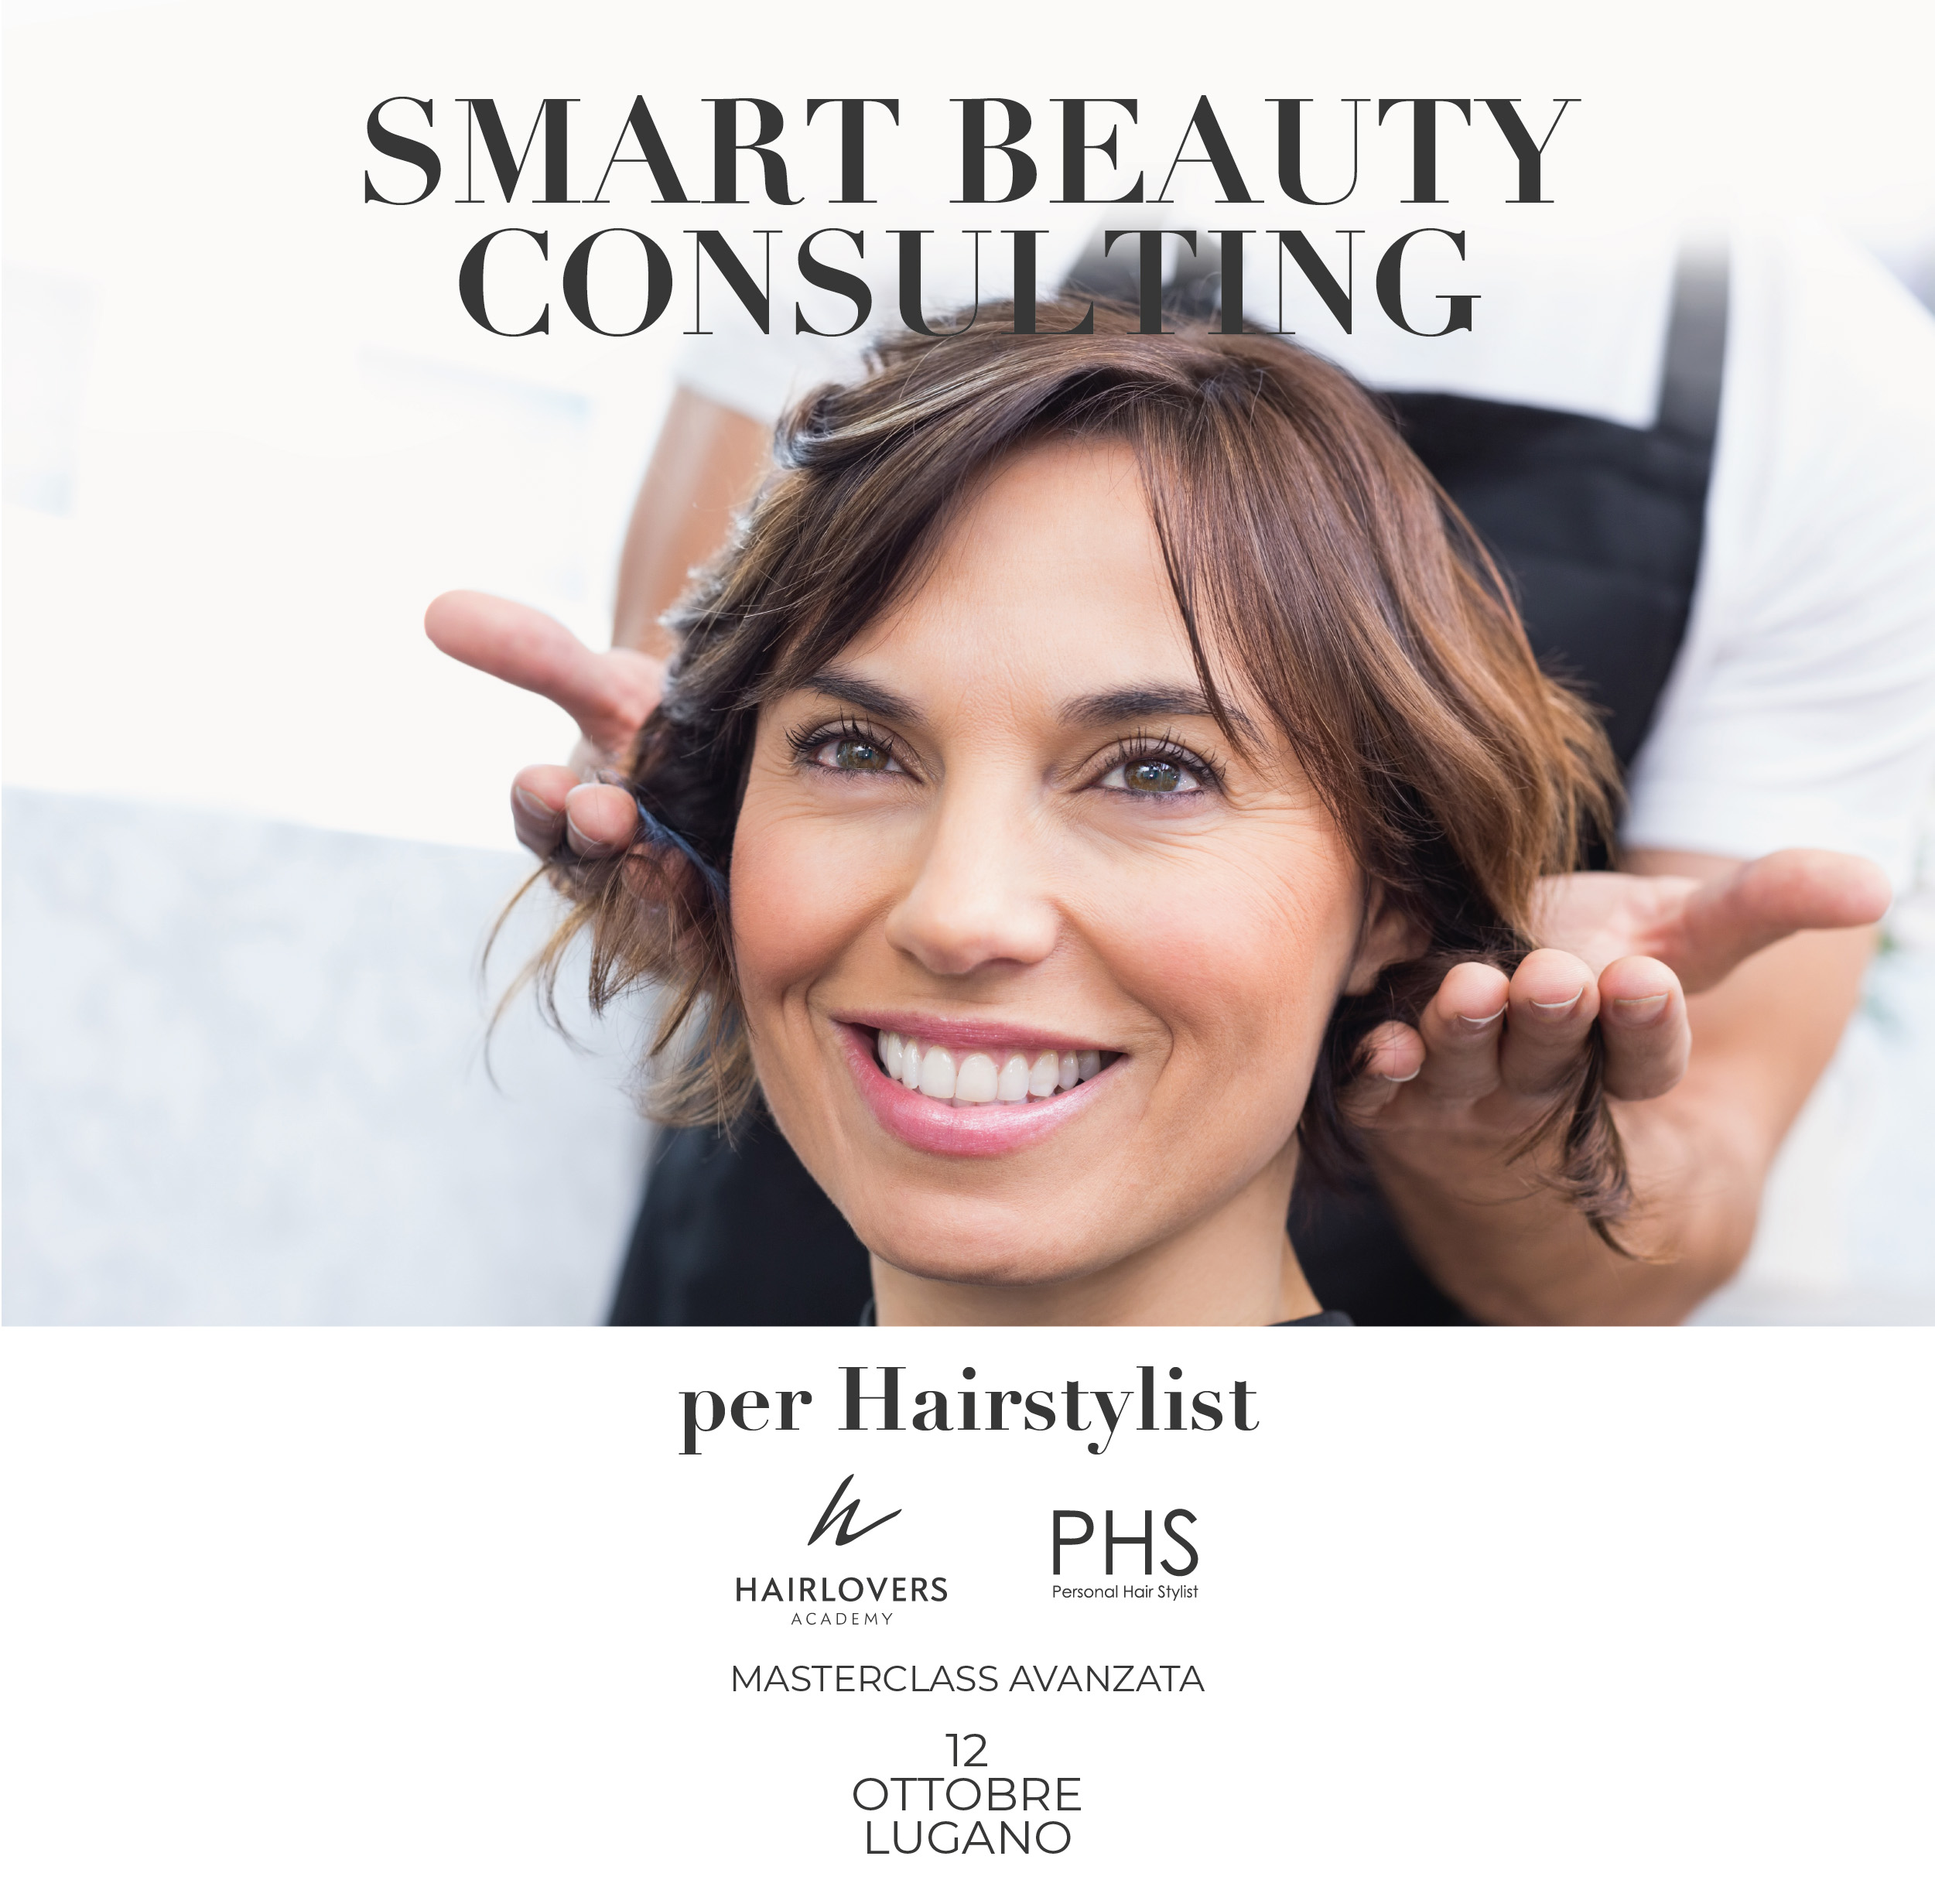 hairlovers-academy-smart-beauty-consulting-marco-pontillo